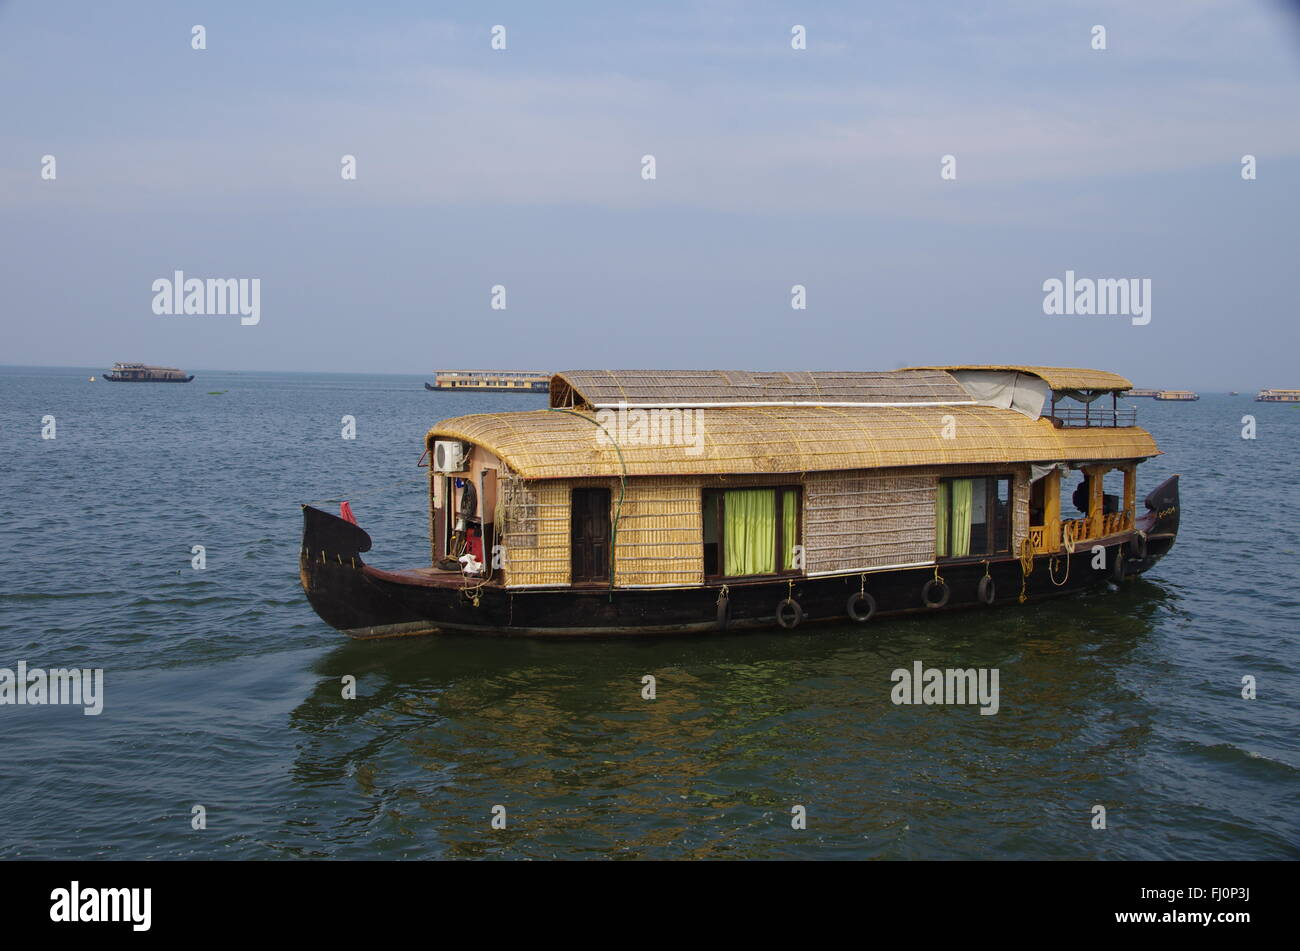 House Boat - Stock Image